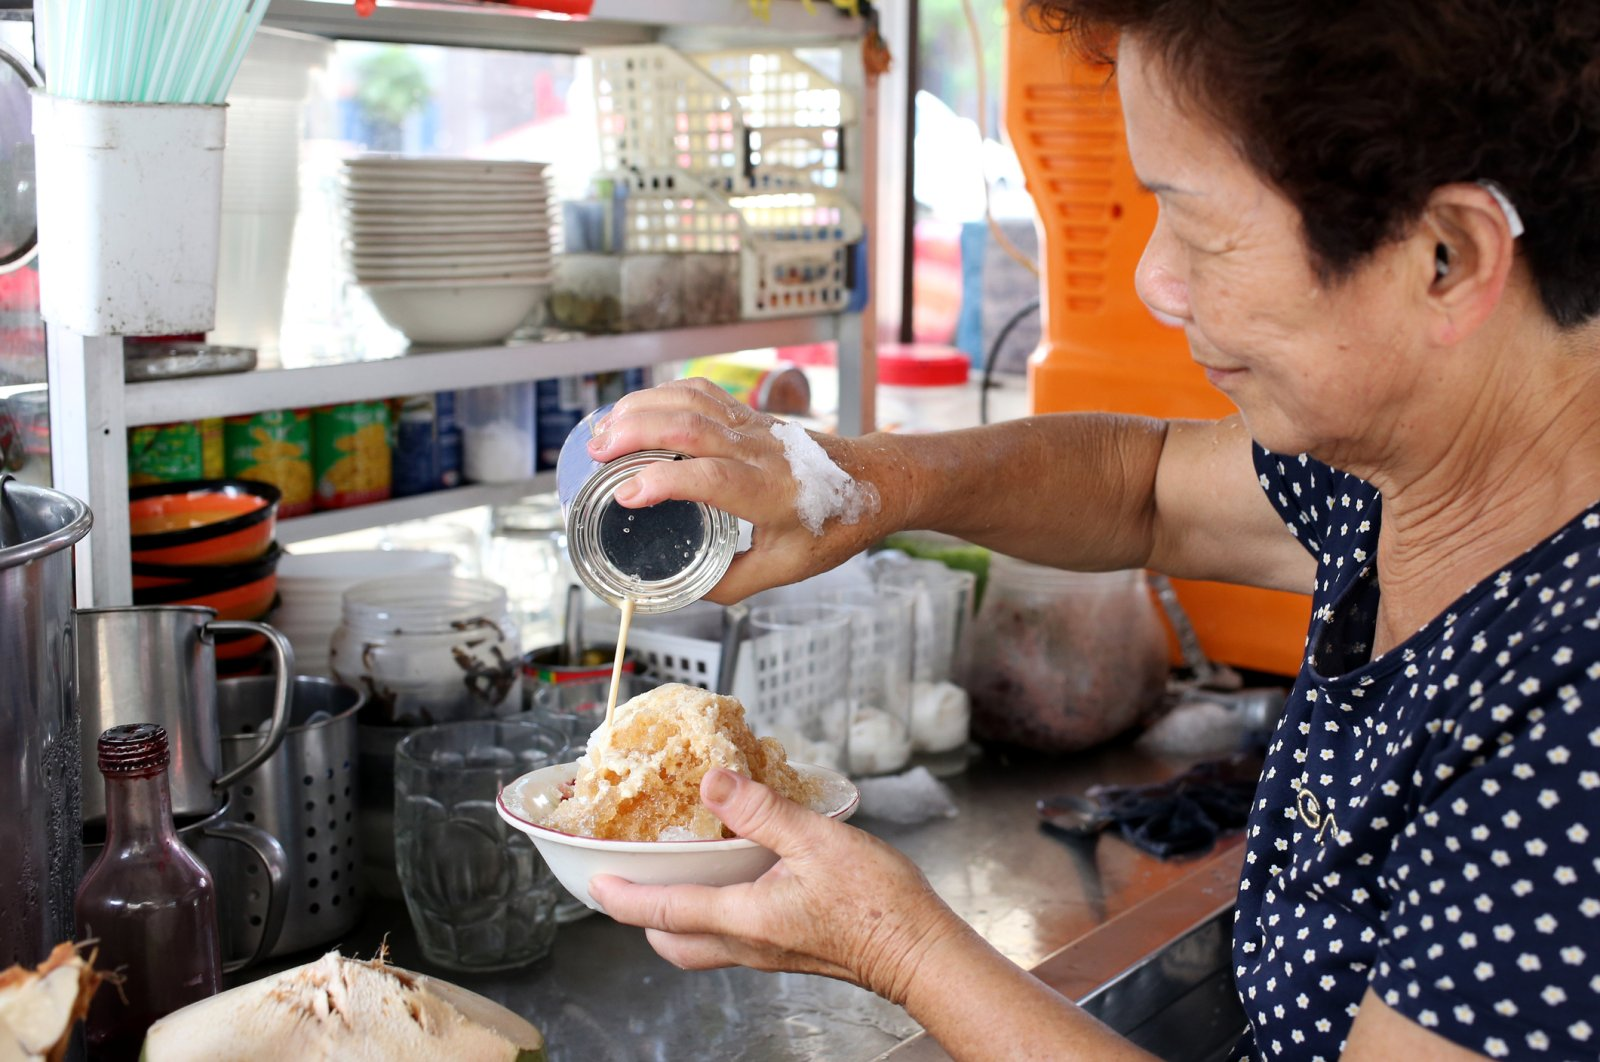 From molasses and syrups to evaporated milk, shaved ice can be flavored with many ingredients. (iStock Photo / Alex Liew)